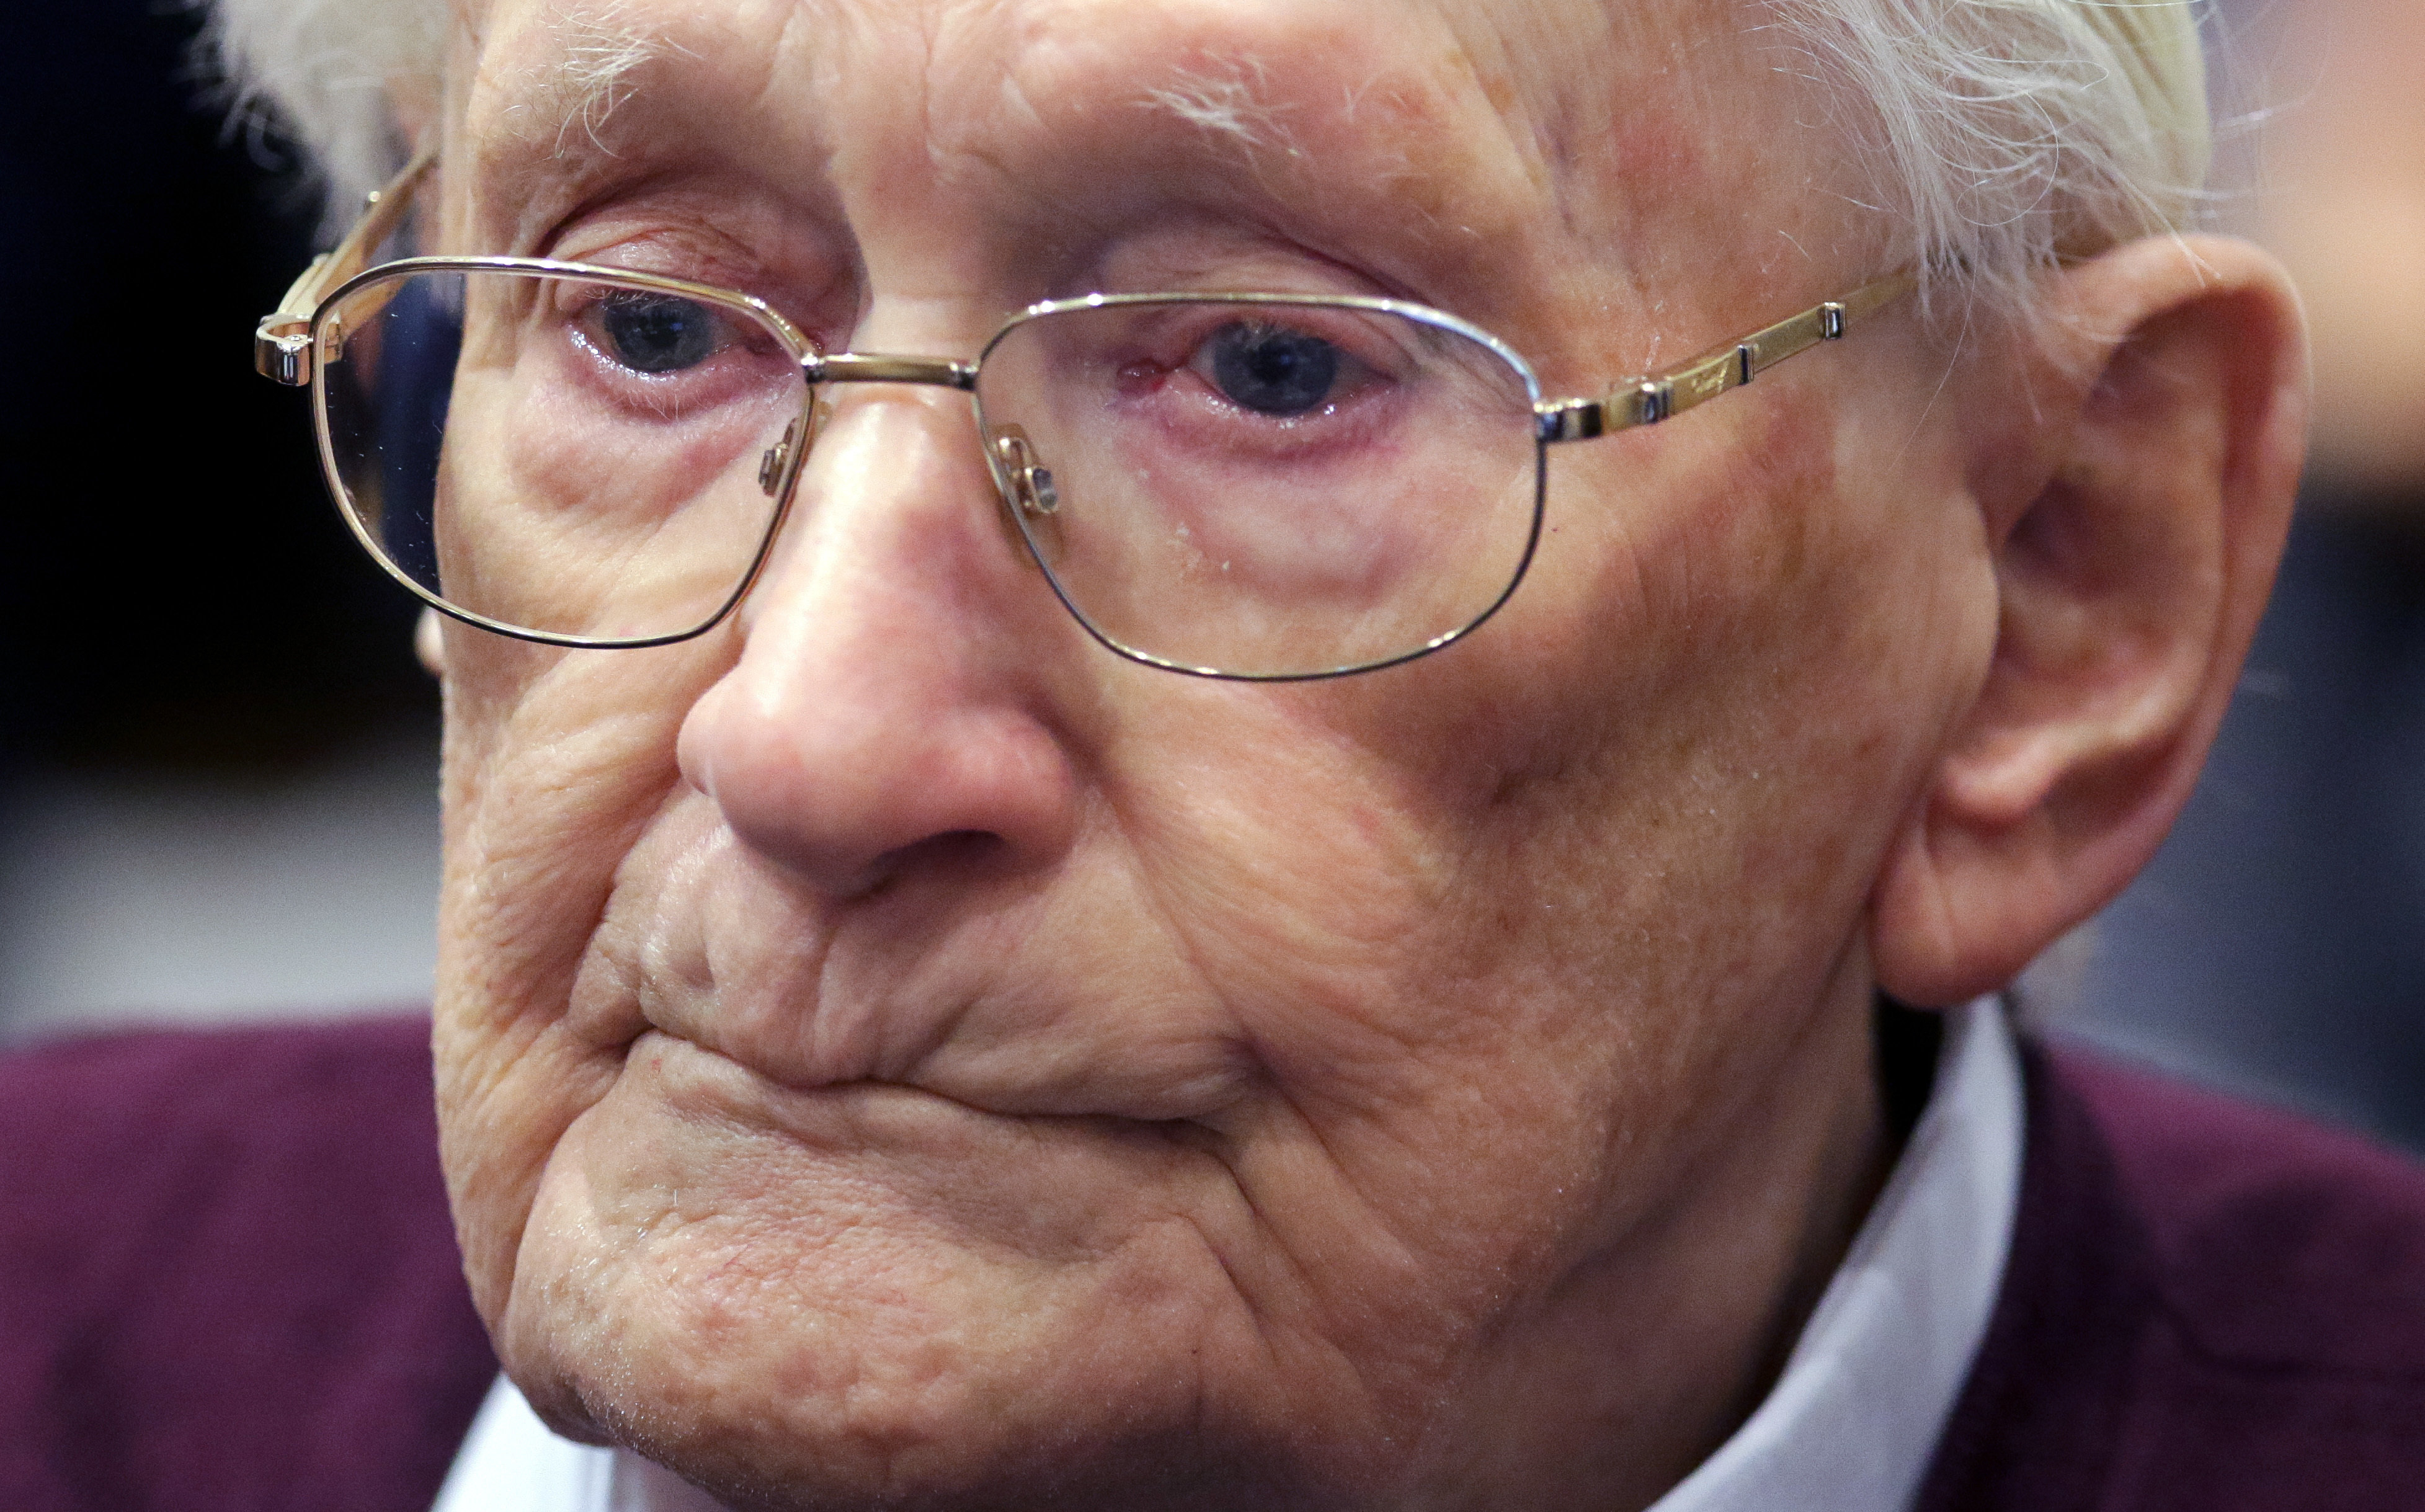 FILE - In this July 15, 2015 file photo SS sergeant Oskar Groening listens to the verdict of his trial at a court in Lueneburg, northern Germany. A German court has rejected the appeal of the former Auschwitz guard against serving his sentence on 300,000 counts of accessory to murder. The Celle state court ruled Wednesday, Nov. 29, 2017, that Oskar Groening was good enough health to serve his four years in prison. (Axel Heimken/Pool Photo via AP, file)